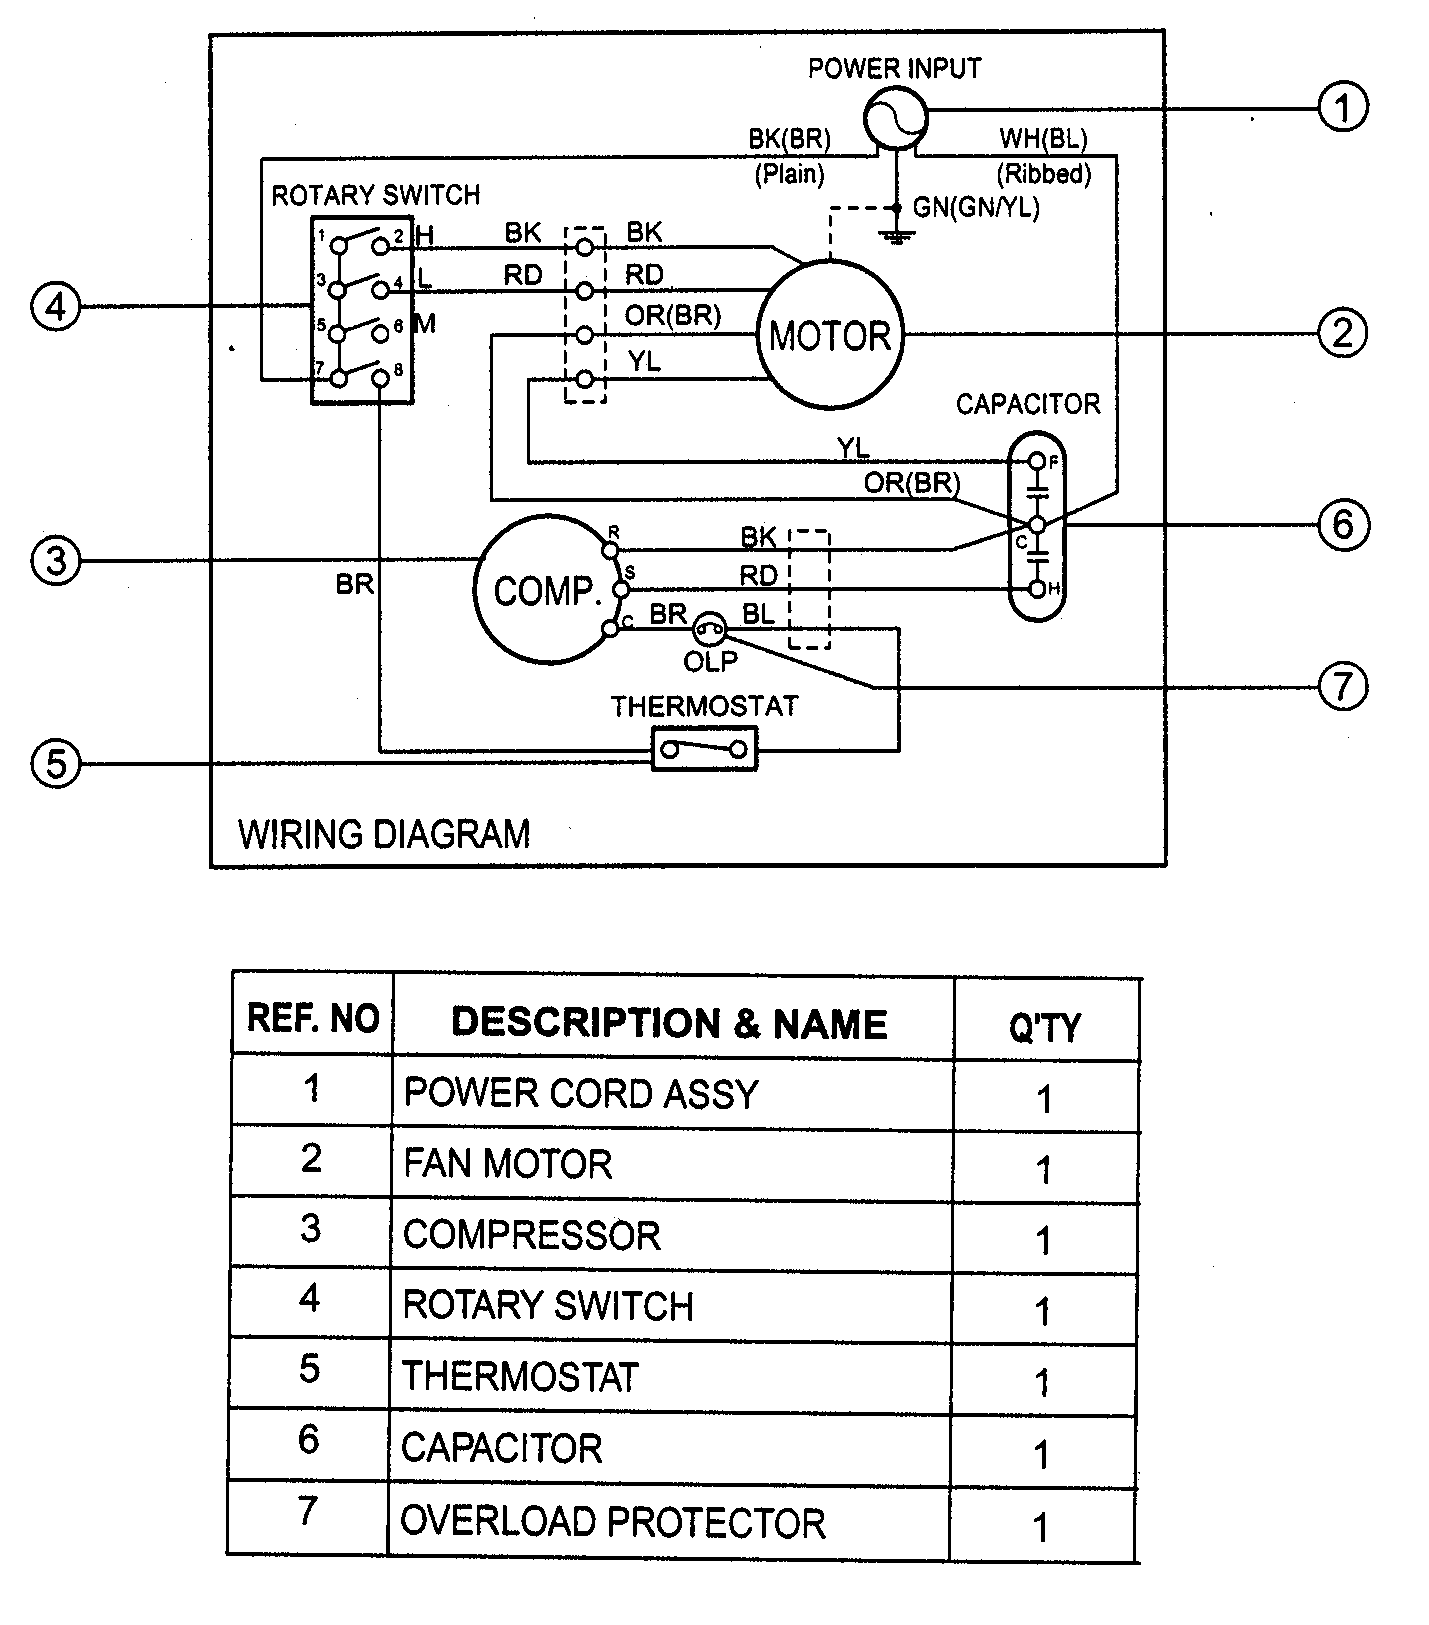 50021807 00002?resize=665%2C756 carrier rv air conditioner wiring diagram wiring diagram  at gsmx.co